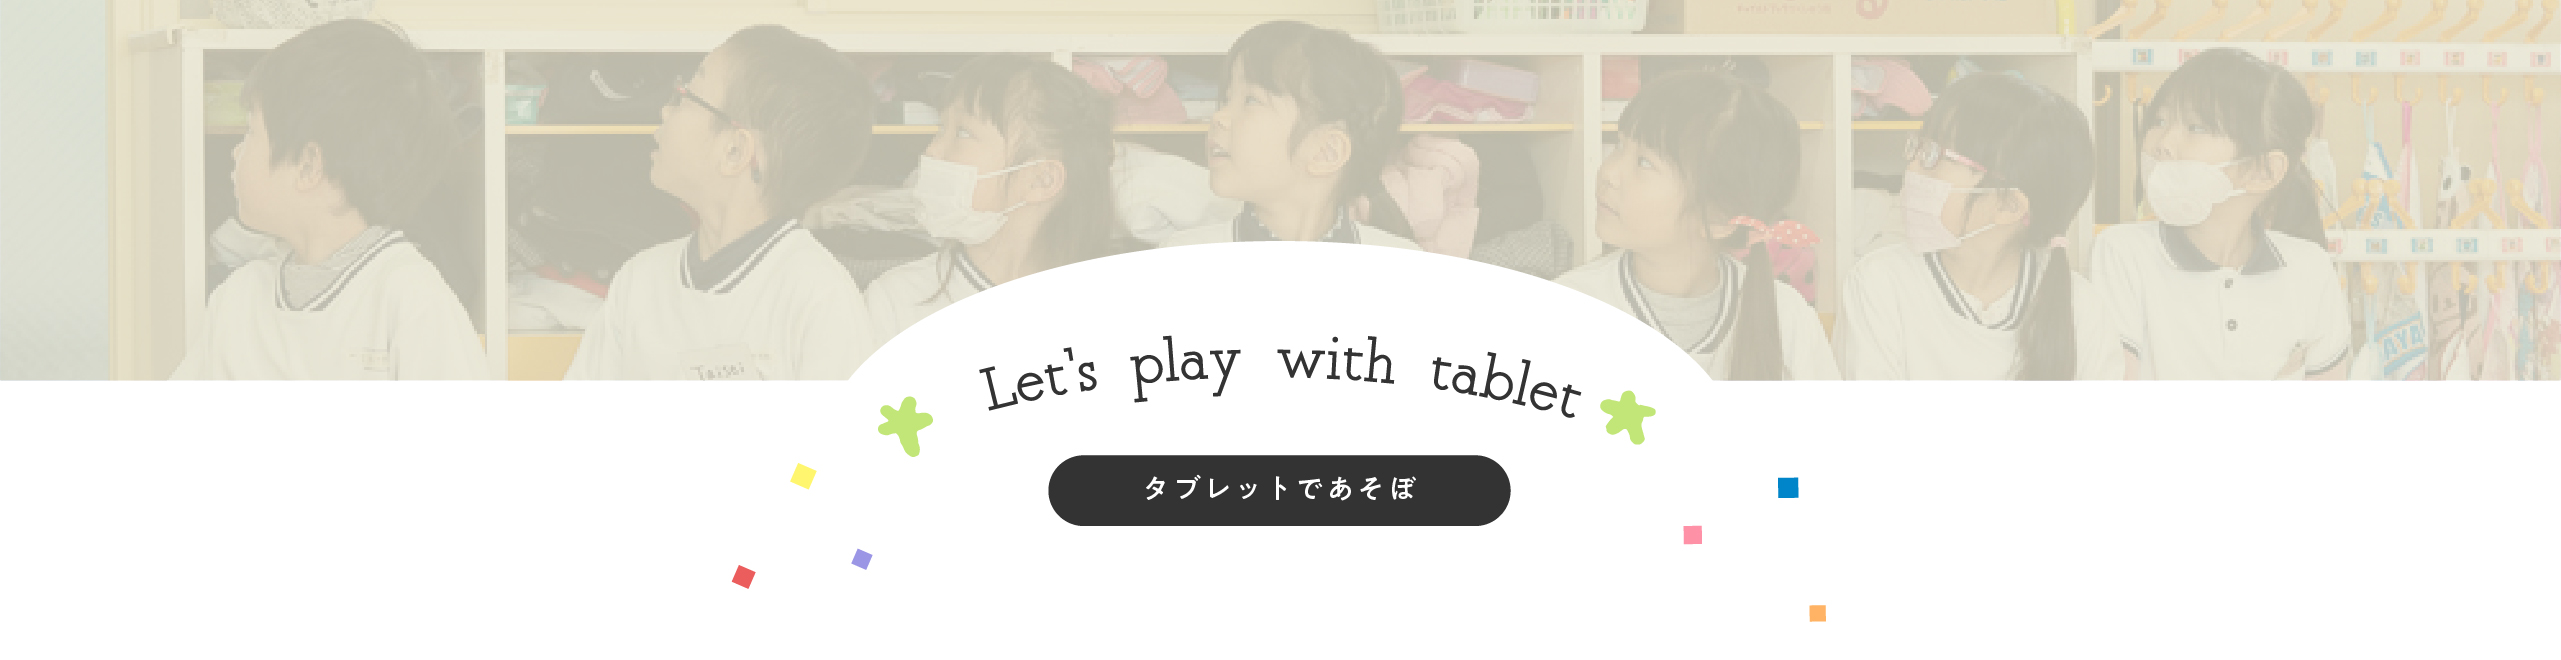 Let's play with tablet -タブレットであそぼ-